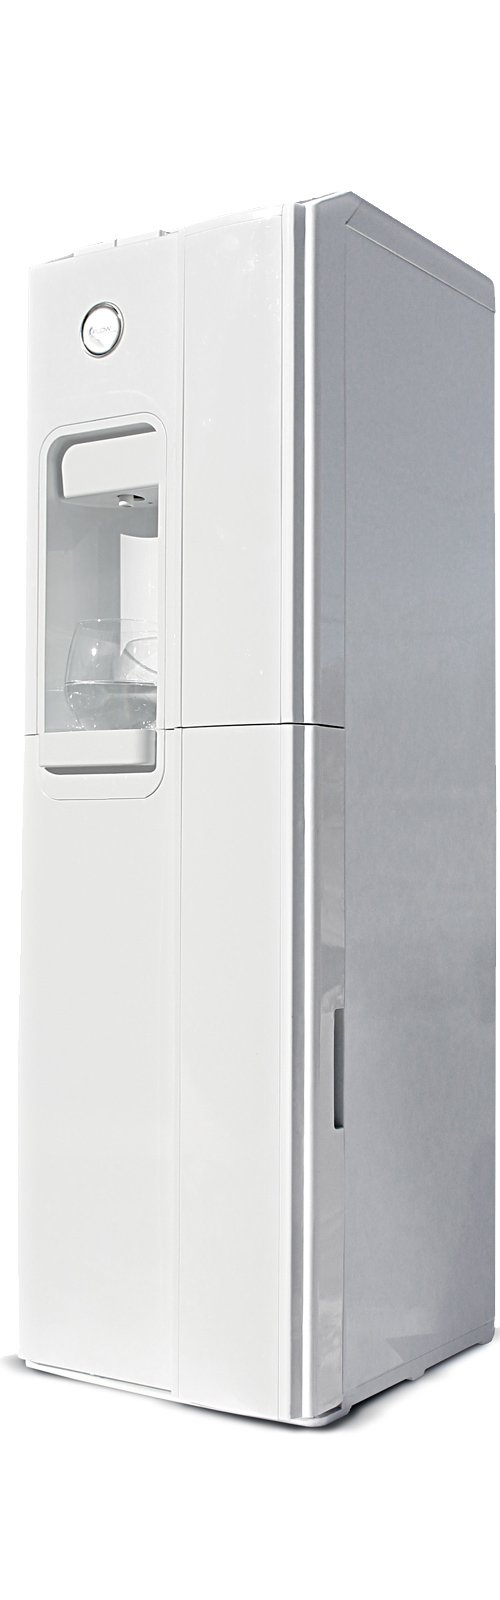 Best Décor Flow18 Vw Bottleless Hot And Cold Water Dispenser This Month